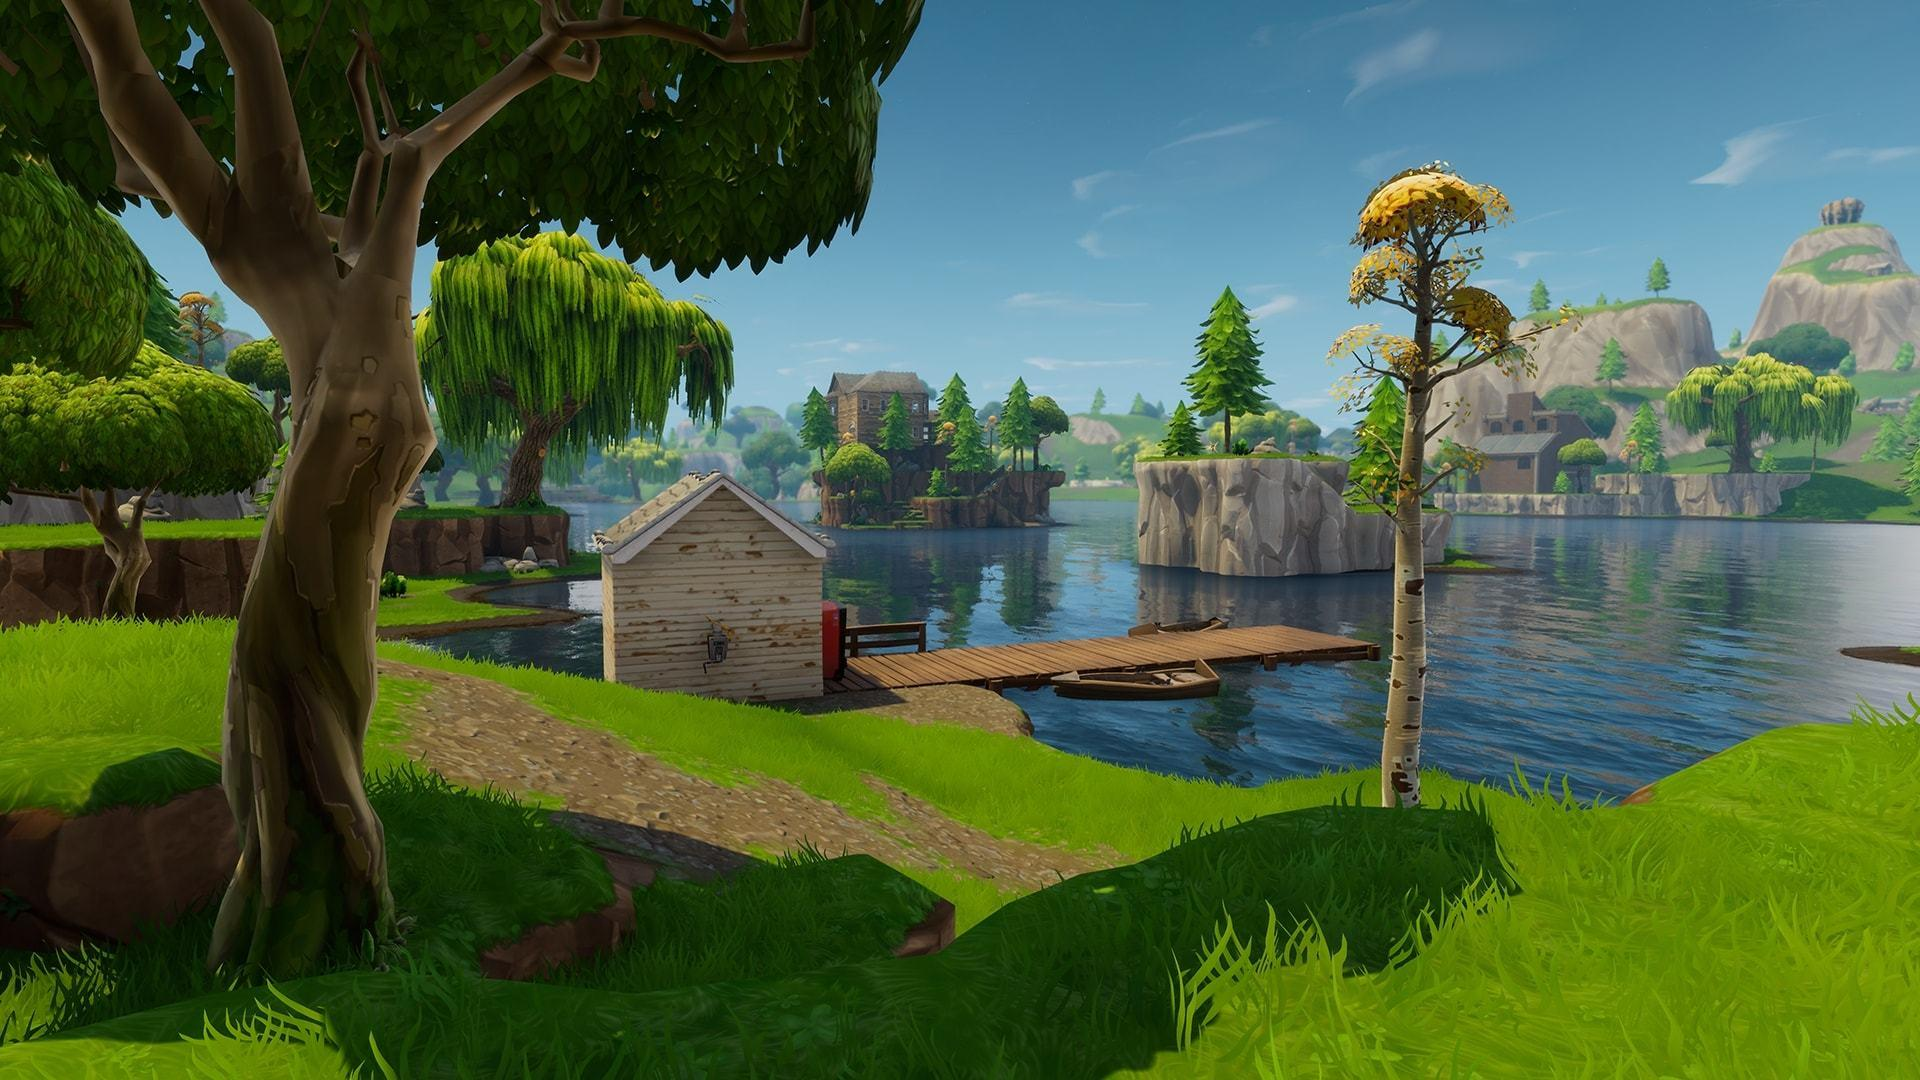 Fortnite Locations Wallpapers Top Free Fortnite Locations Backgrounds Wallpaperaccess